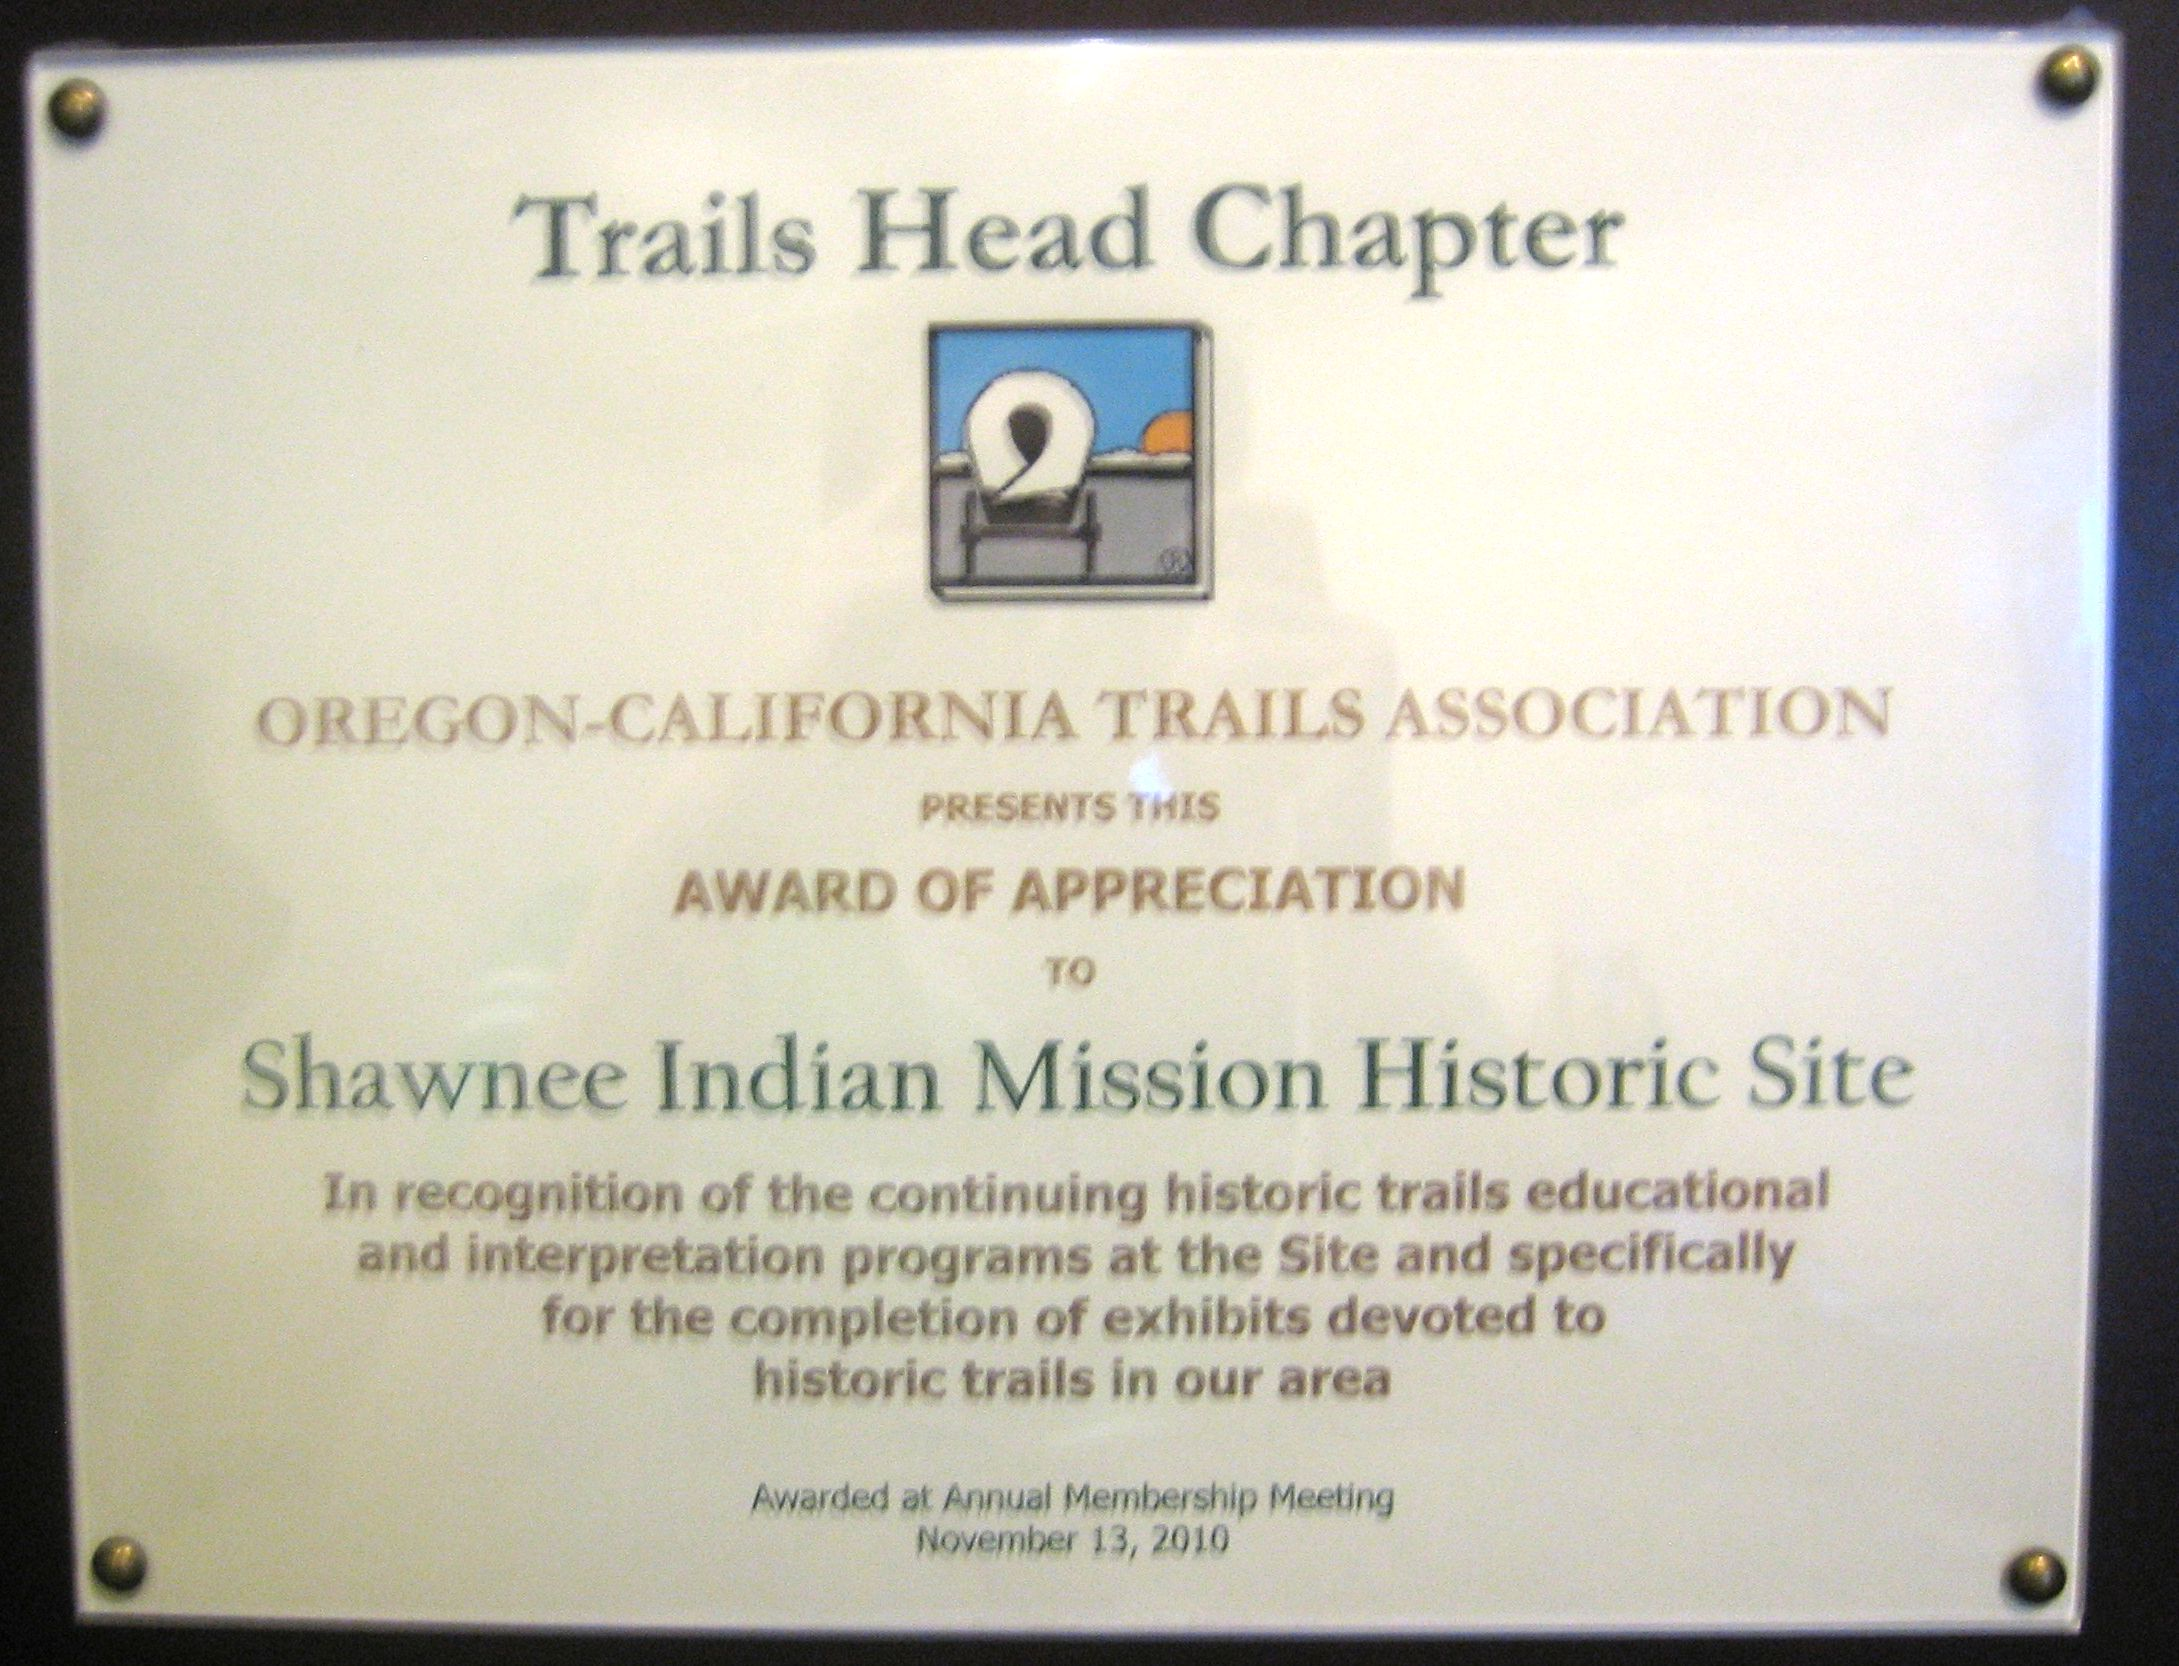 Award from Trails Head Chapter of the Oregon-California Trail Association